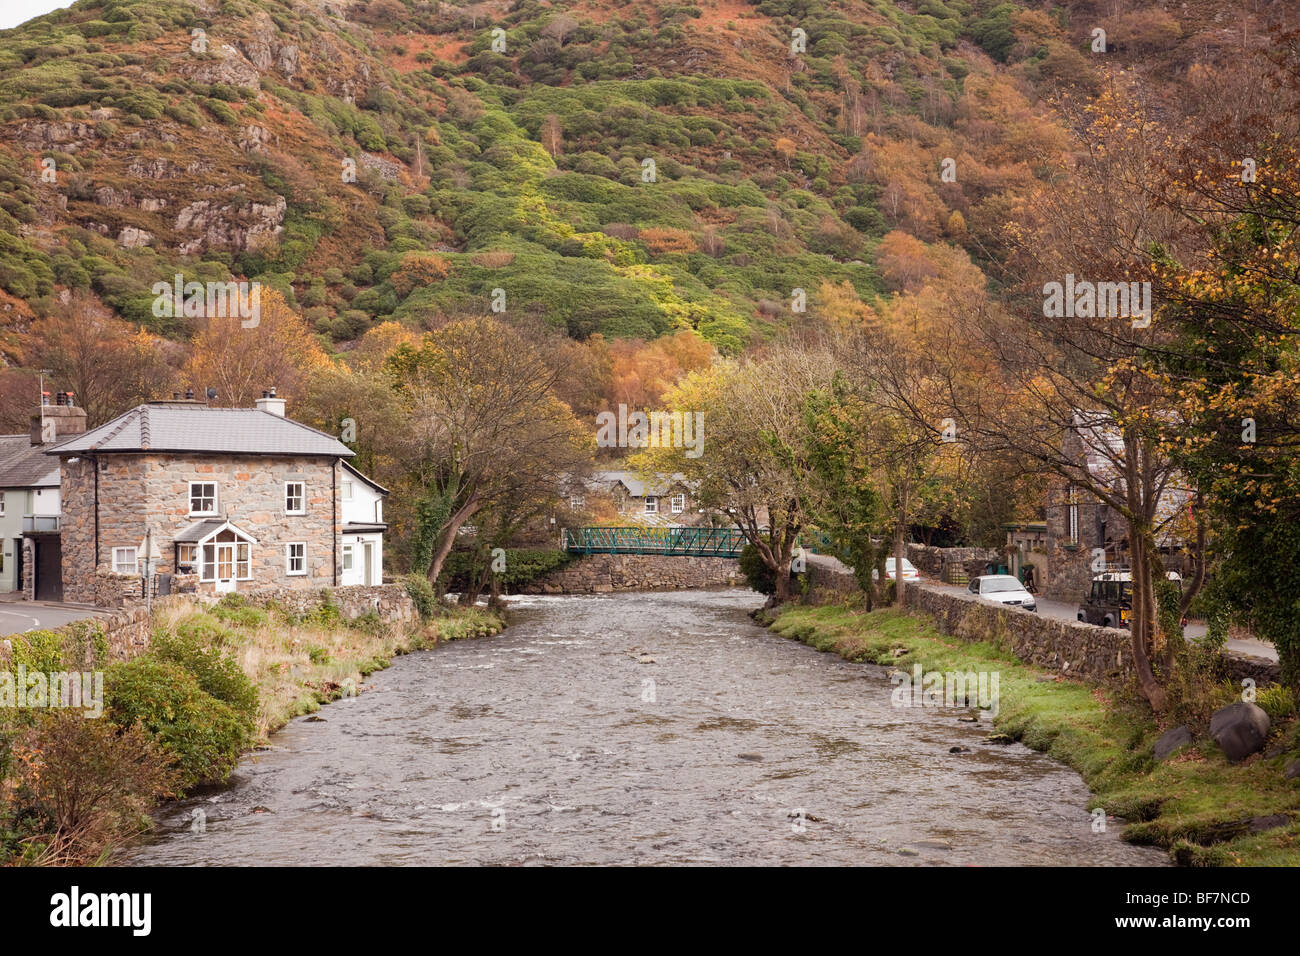 Beddgelert Gwynedd North Wales UK. View along Afon Colwyn River in village in mountains of Snowdonia 'National - Stock Image